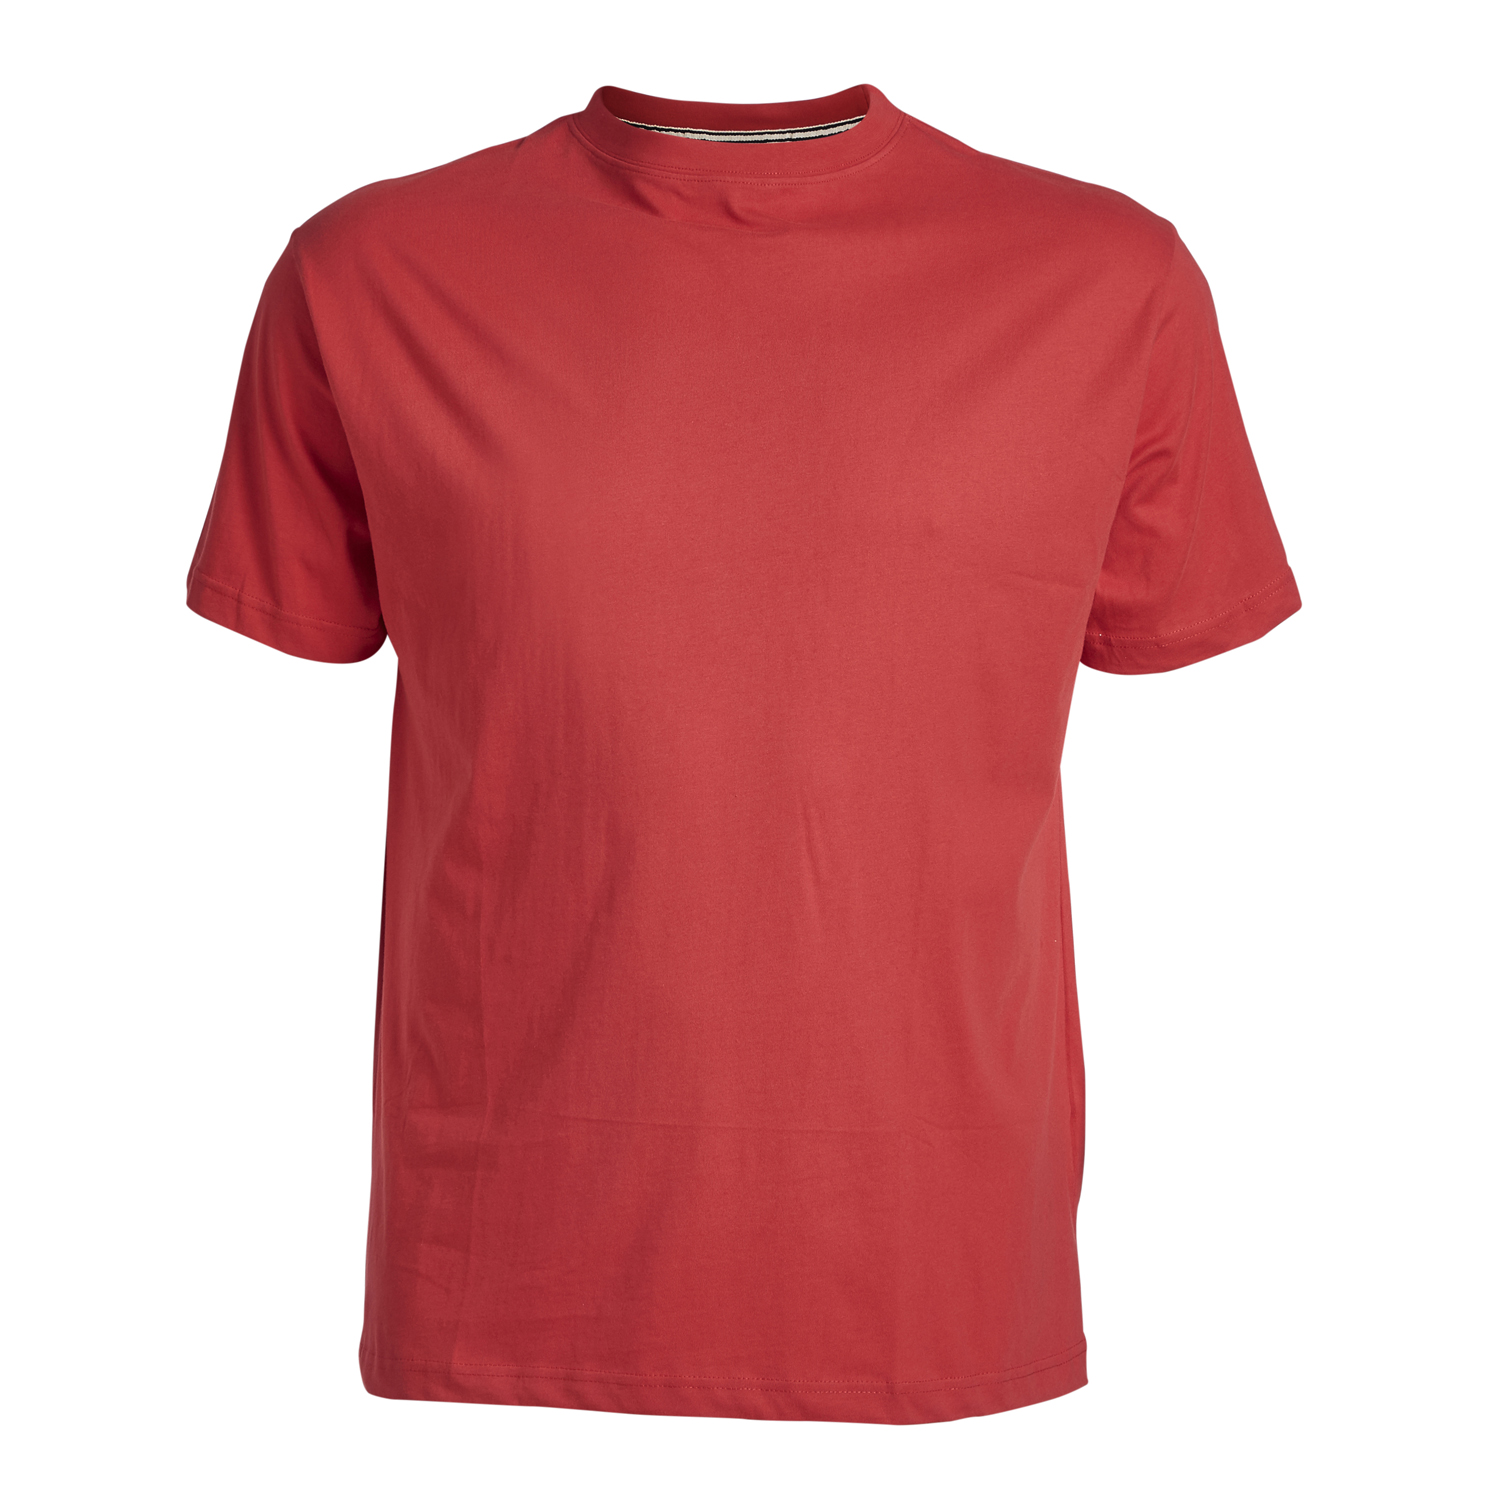 Detailbild zu Rotes Basic-T-Shirt - Rundhals - North 56°4 bis 8XL